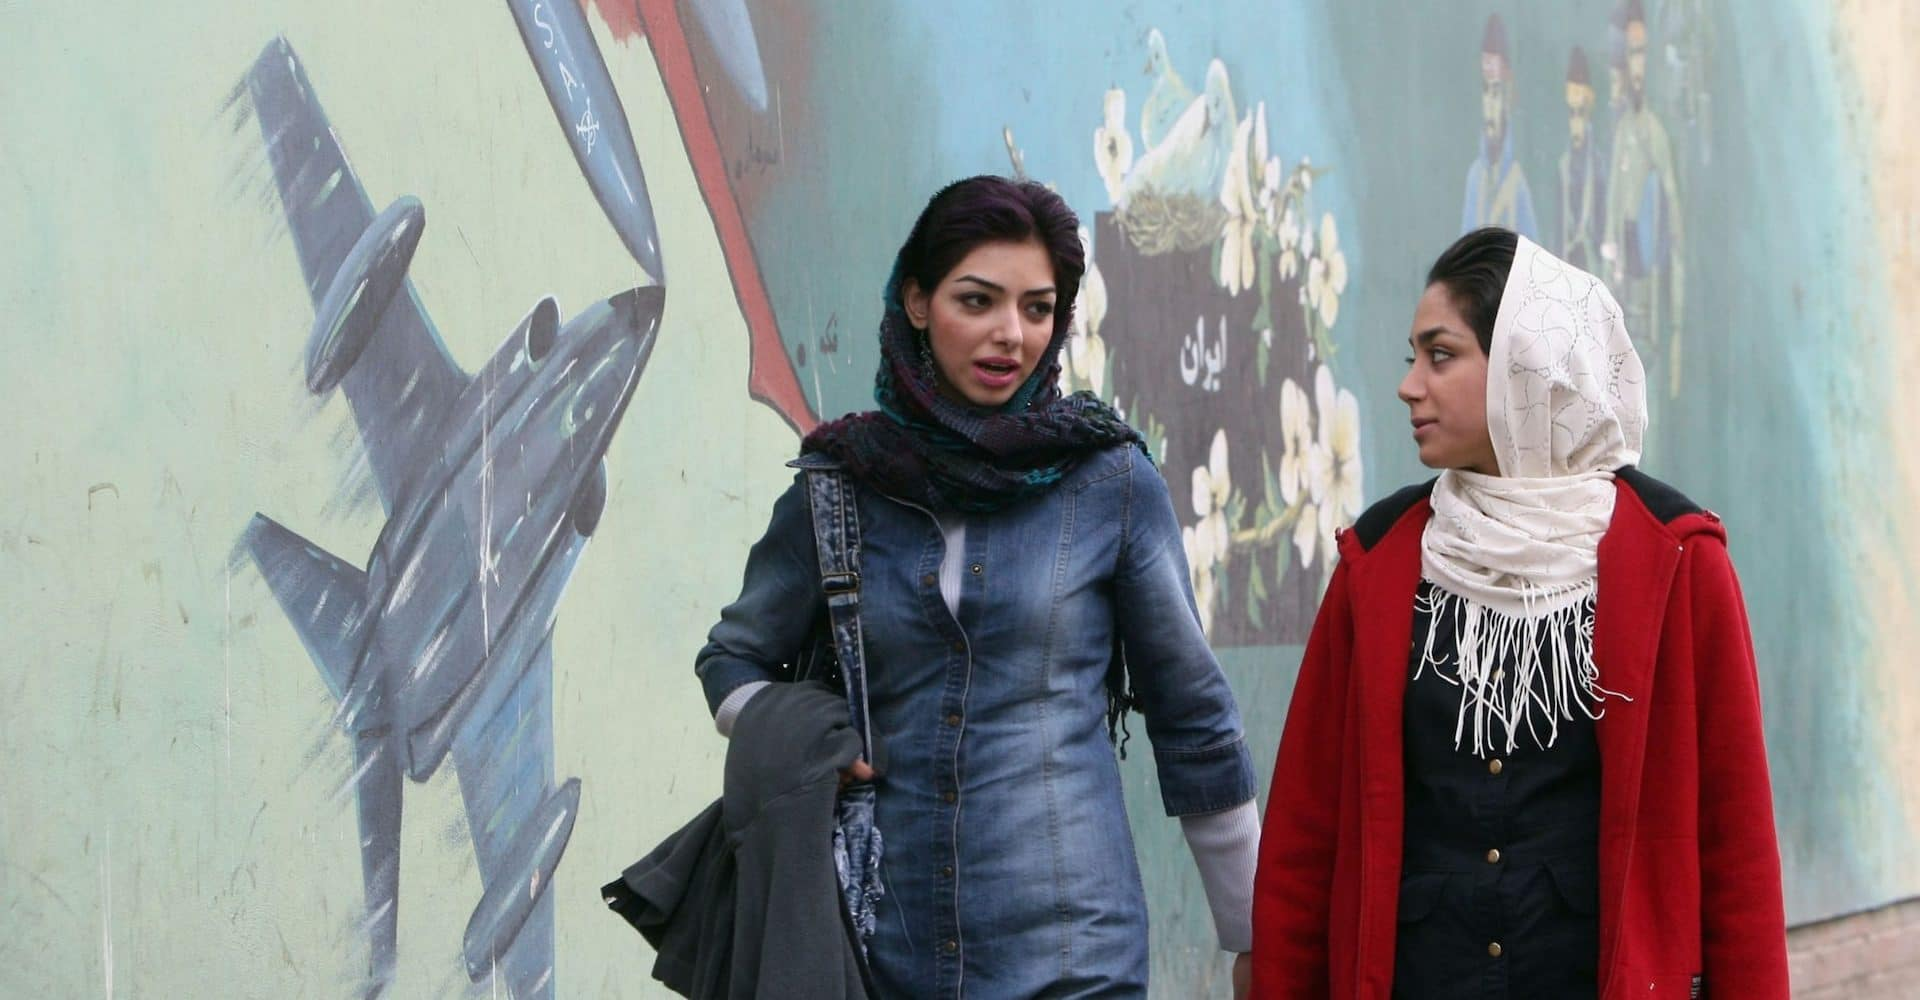 Young Iranian women in Tehran CREDIT: GETTY IMAGES